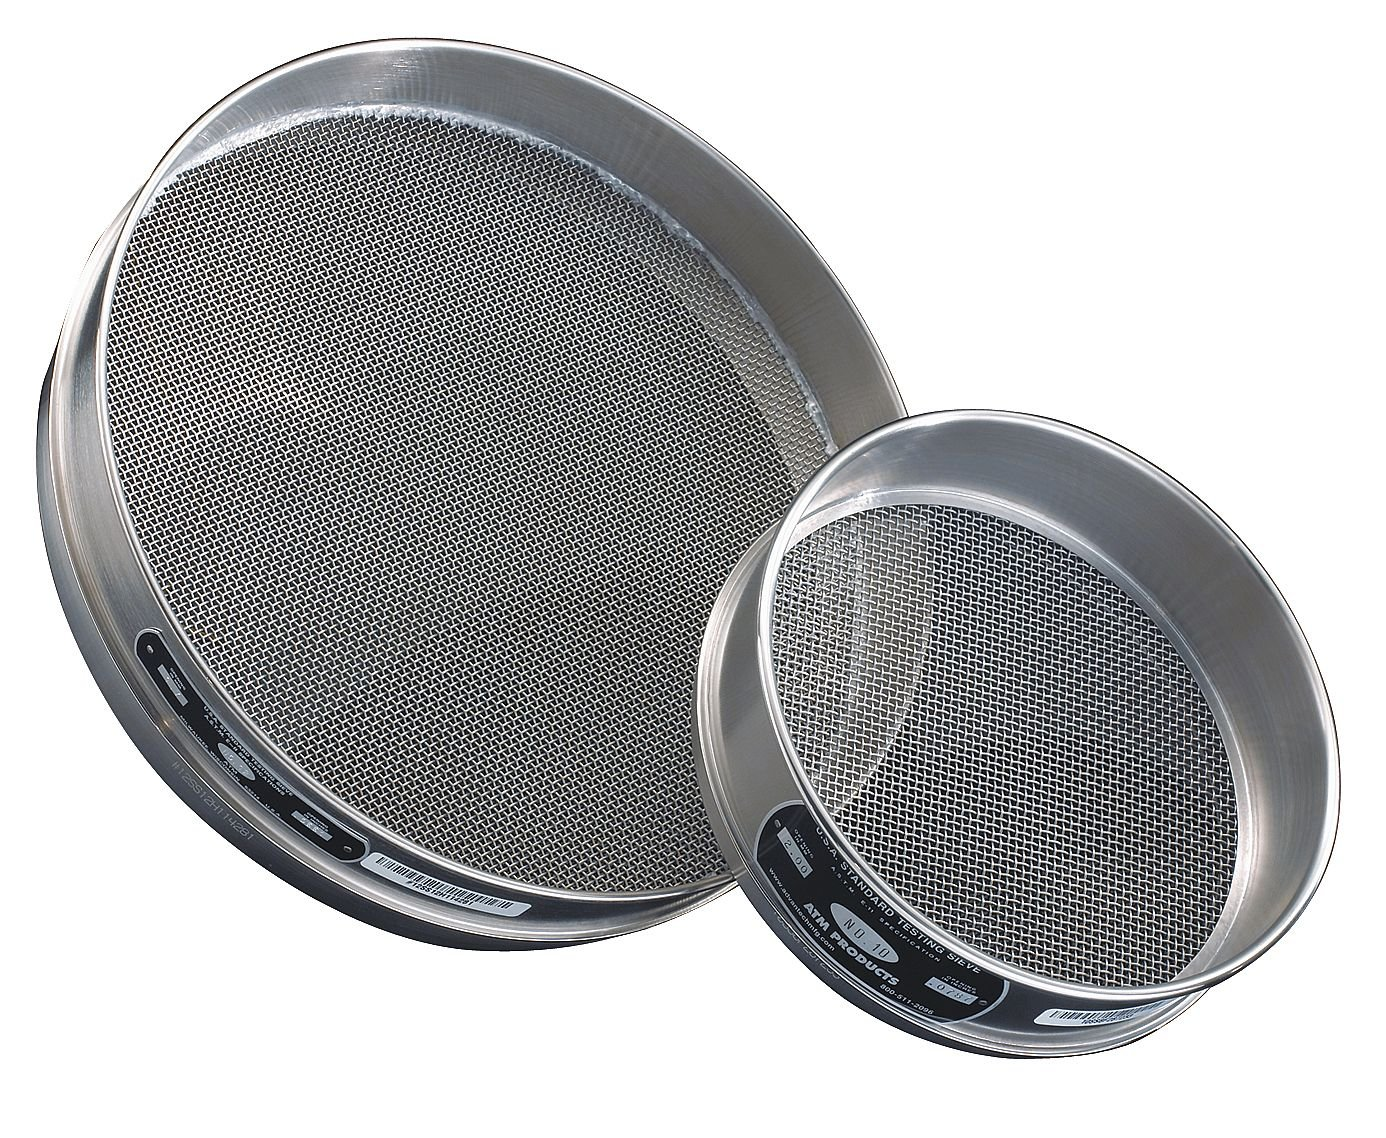 ADVANTECH MANUFACTURING, INC Product # 100SS12F SIEVE 12 DIA 100 MESH 1 EA (ADC offered unit is Each)